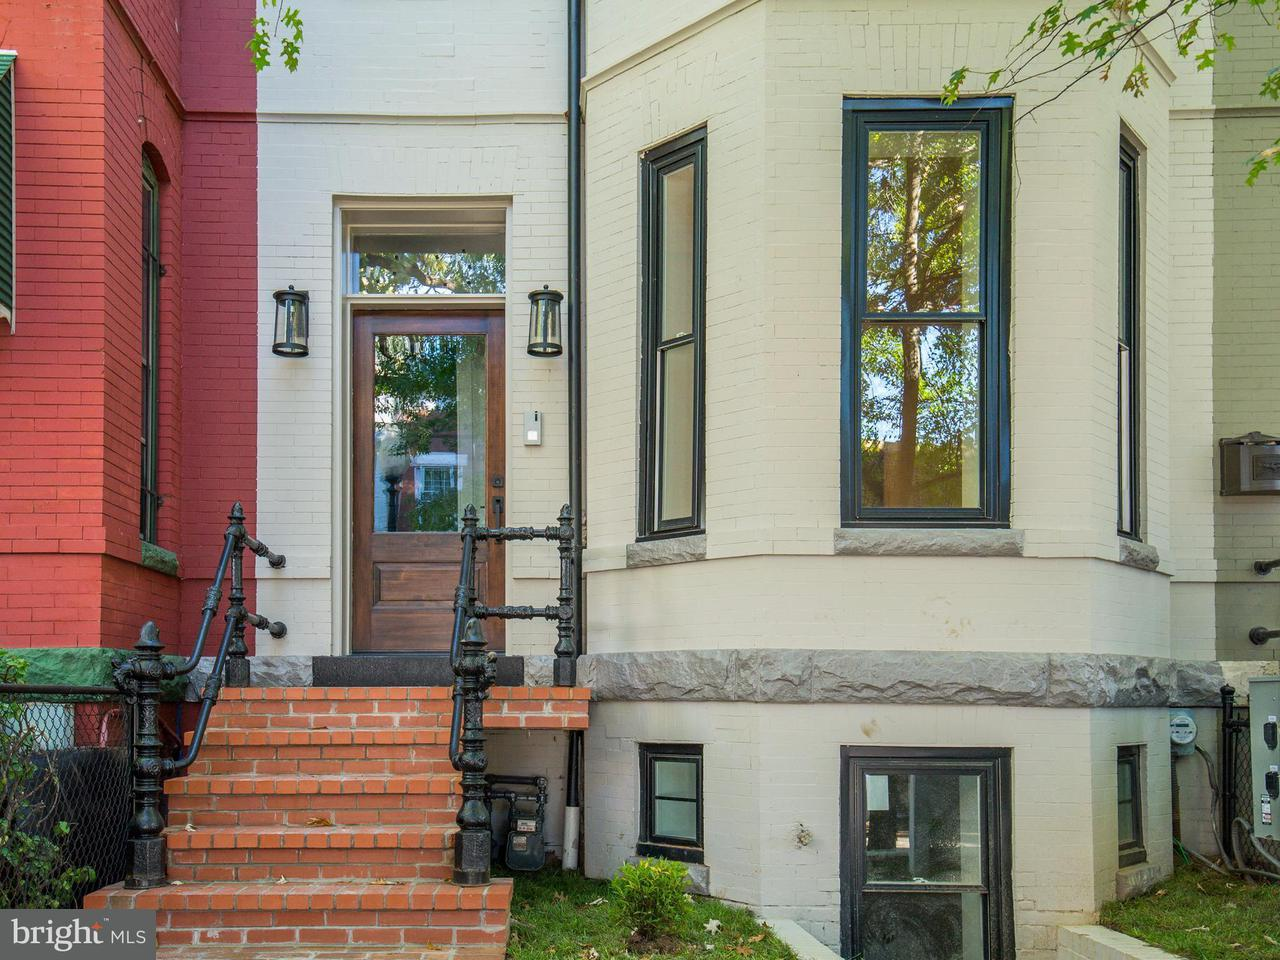 Townhouse for Sale at 51 QUINCY PL NE #1 51 QUINCY PL NE #1 Washington, District Of Columbia 20002 United States